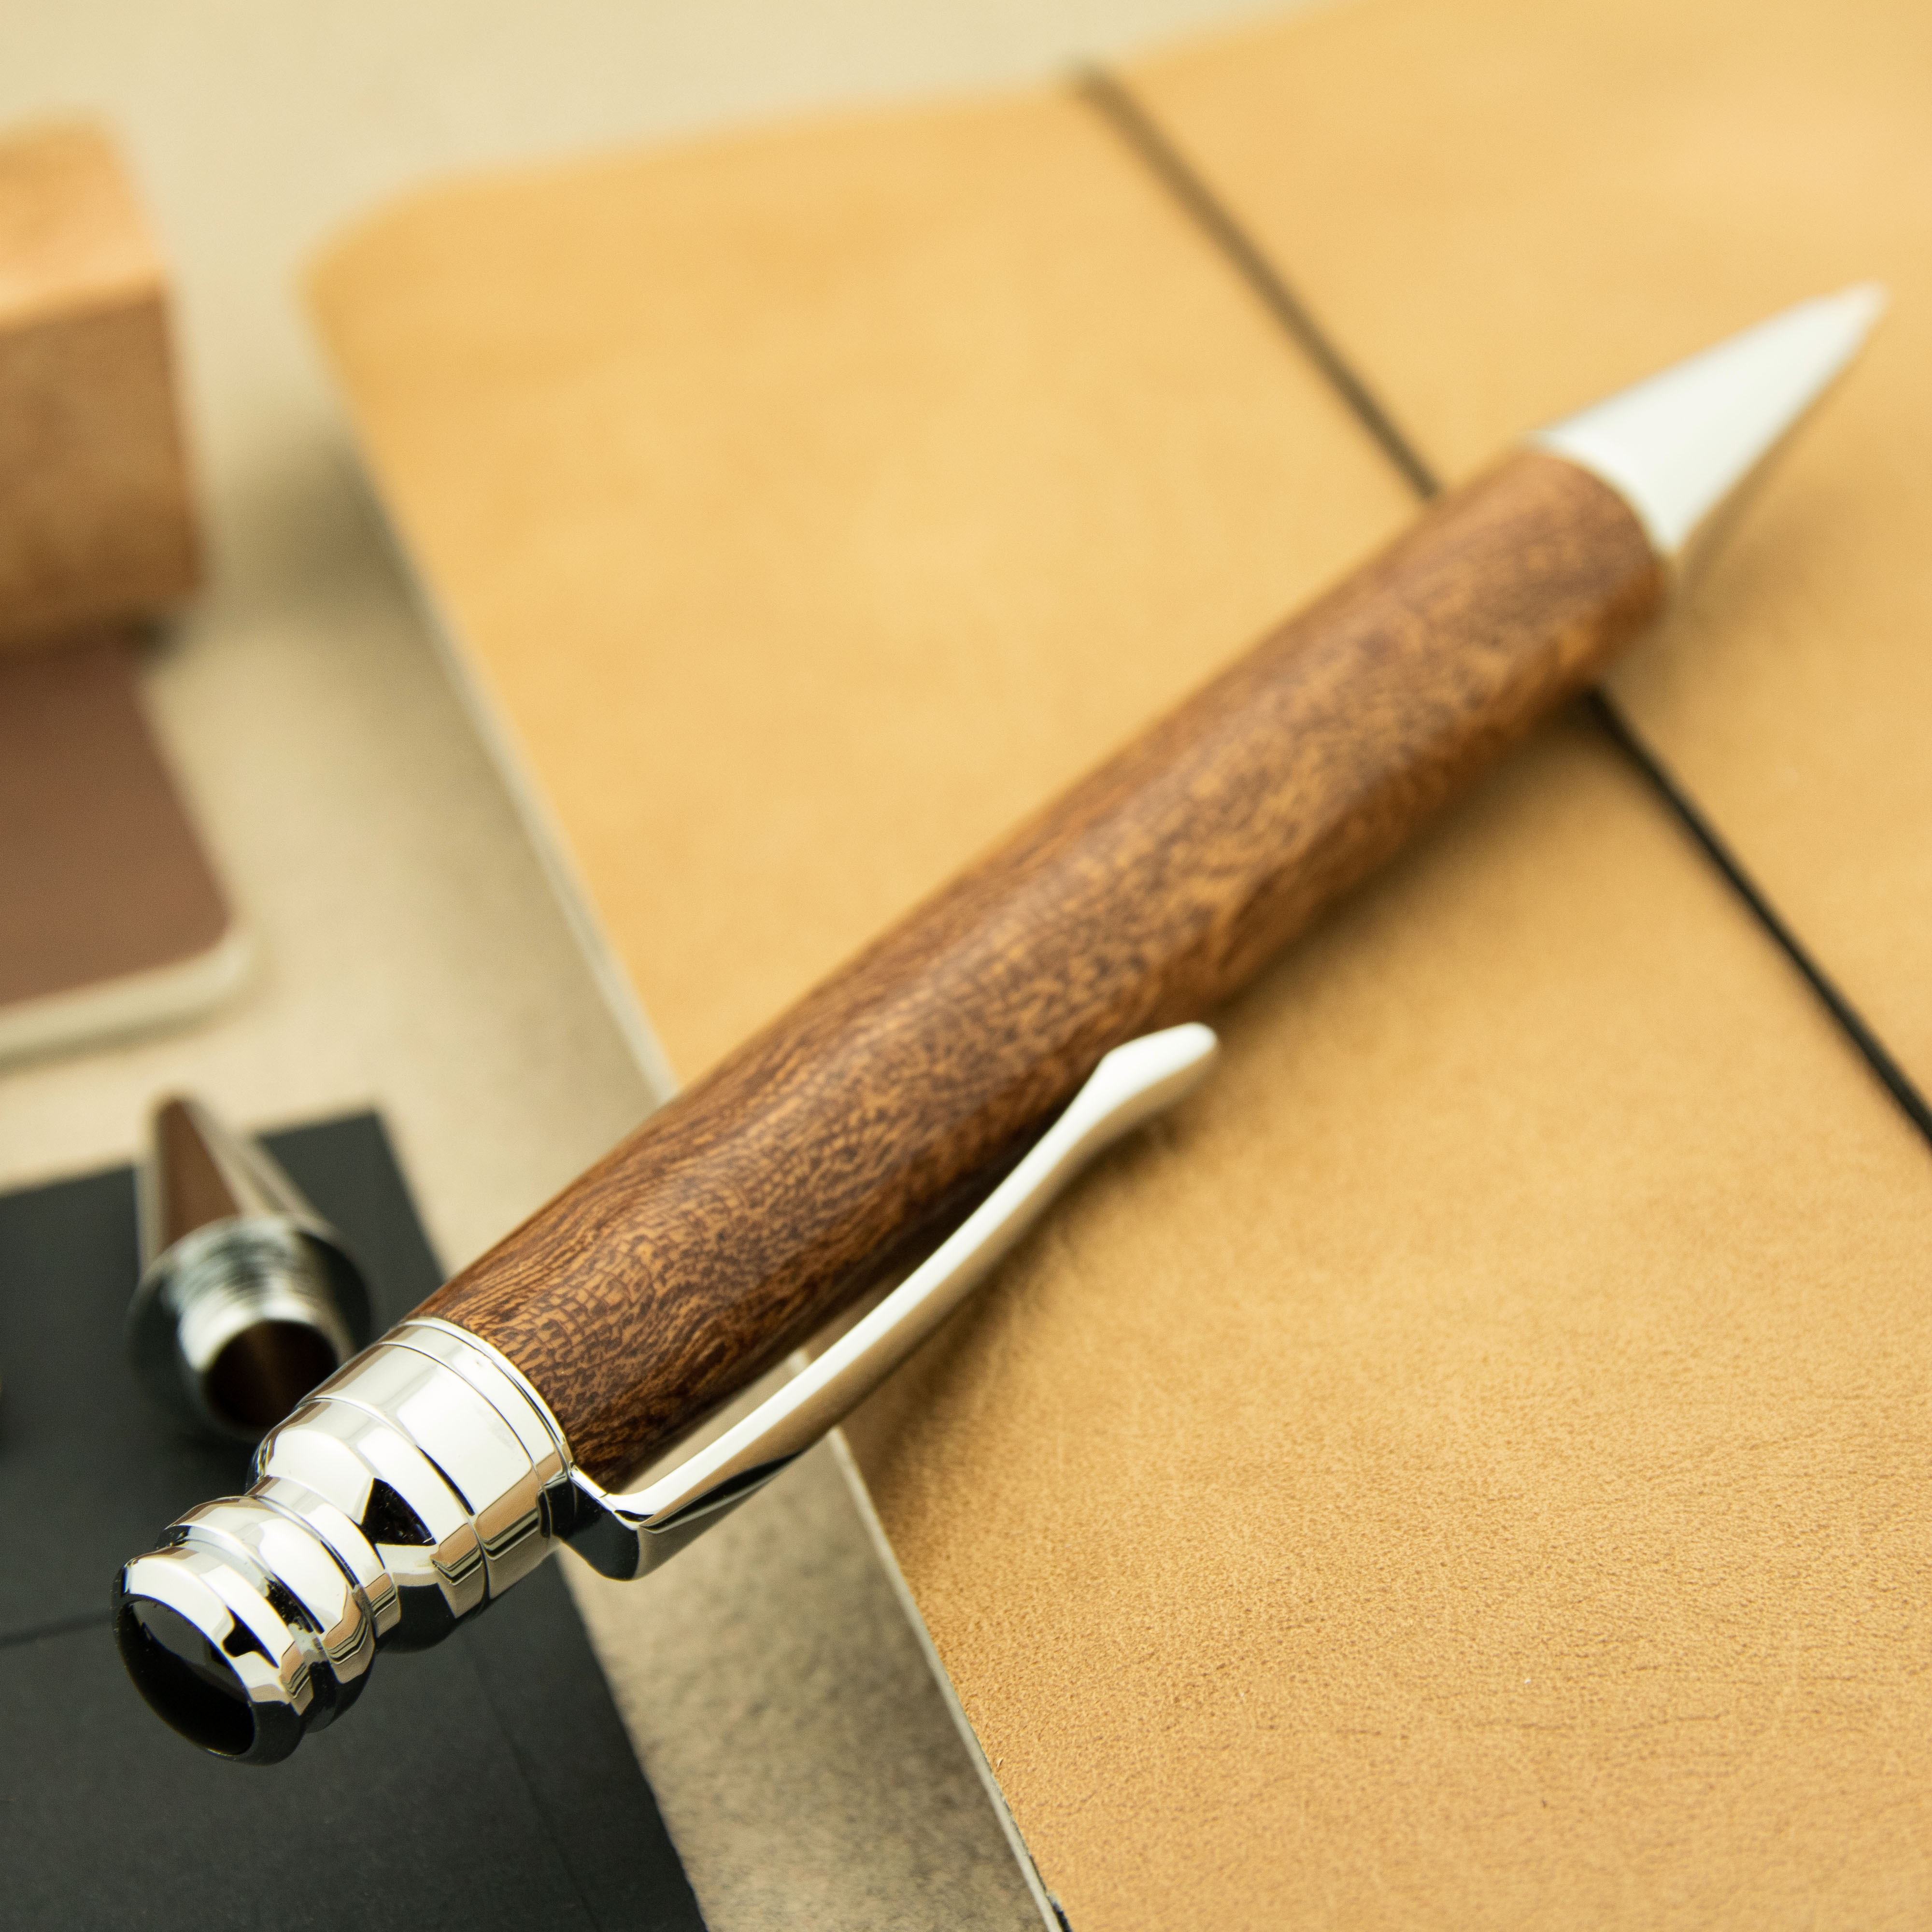 January monthly special - Capstone pen chrome and Pomelle Sapele pen blank